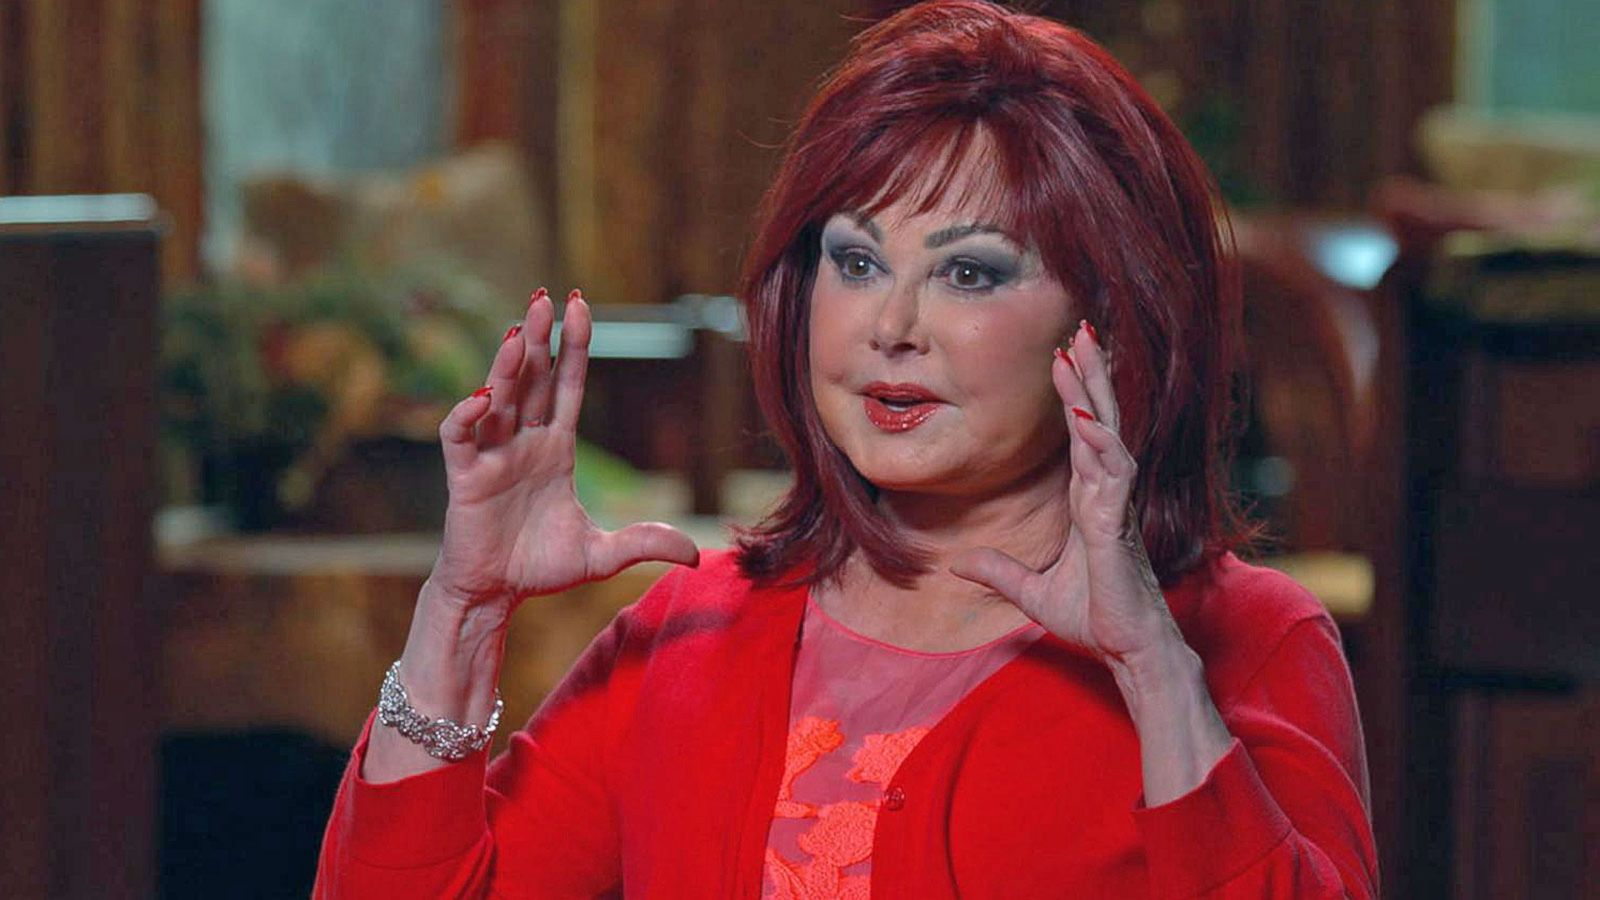 VIDEO: Naomi Judd Opens Up About Battle With 'Life-Threatening' Depression